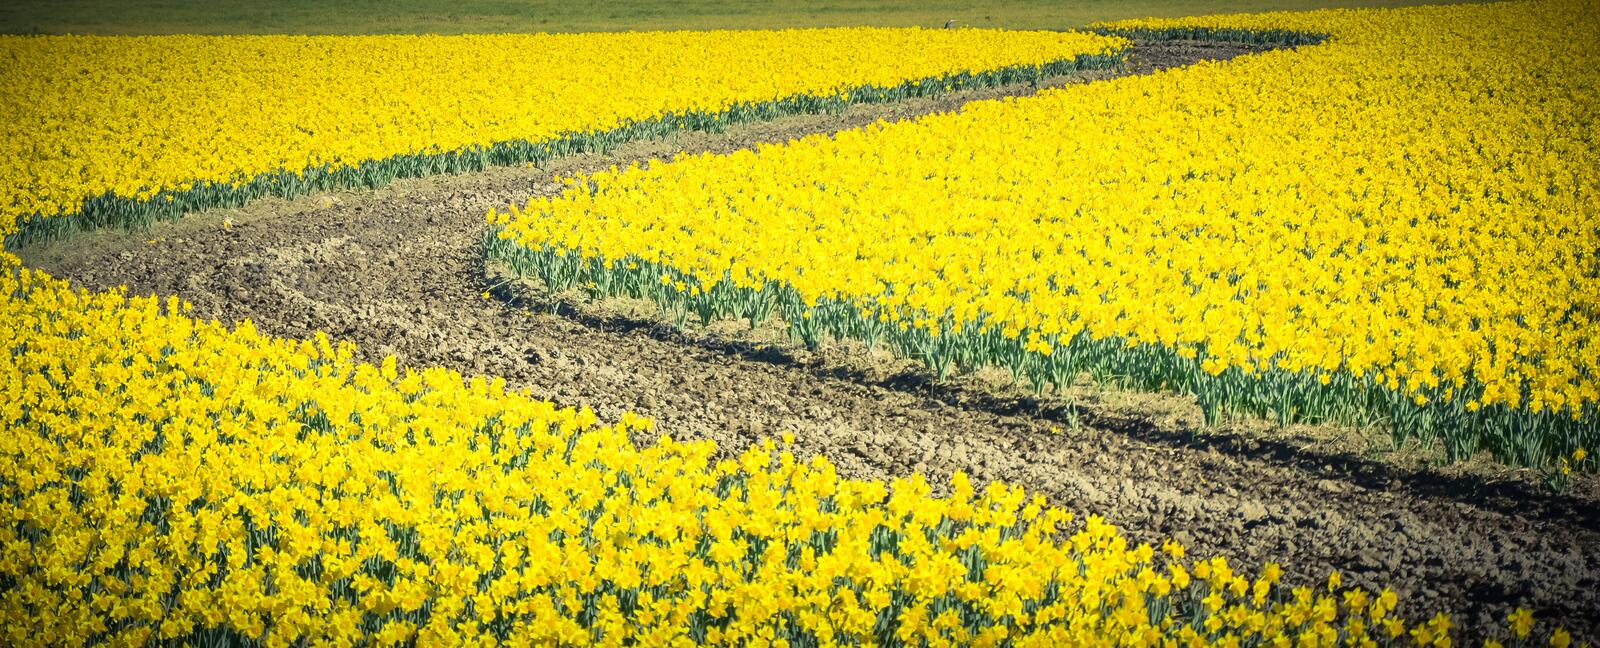 Top view s-curved winding path in daffodil farm at Skagit Valley. WA, USA. Springfield of bright yellow narcissus flower blossom. Nature and agriculture stock photos